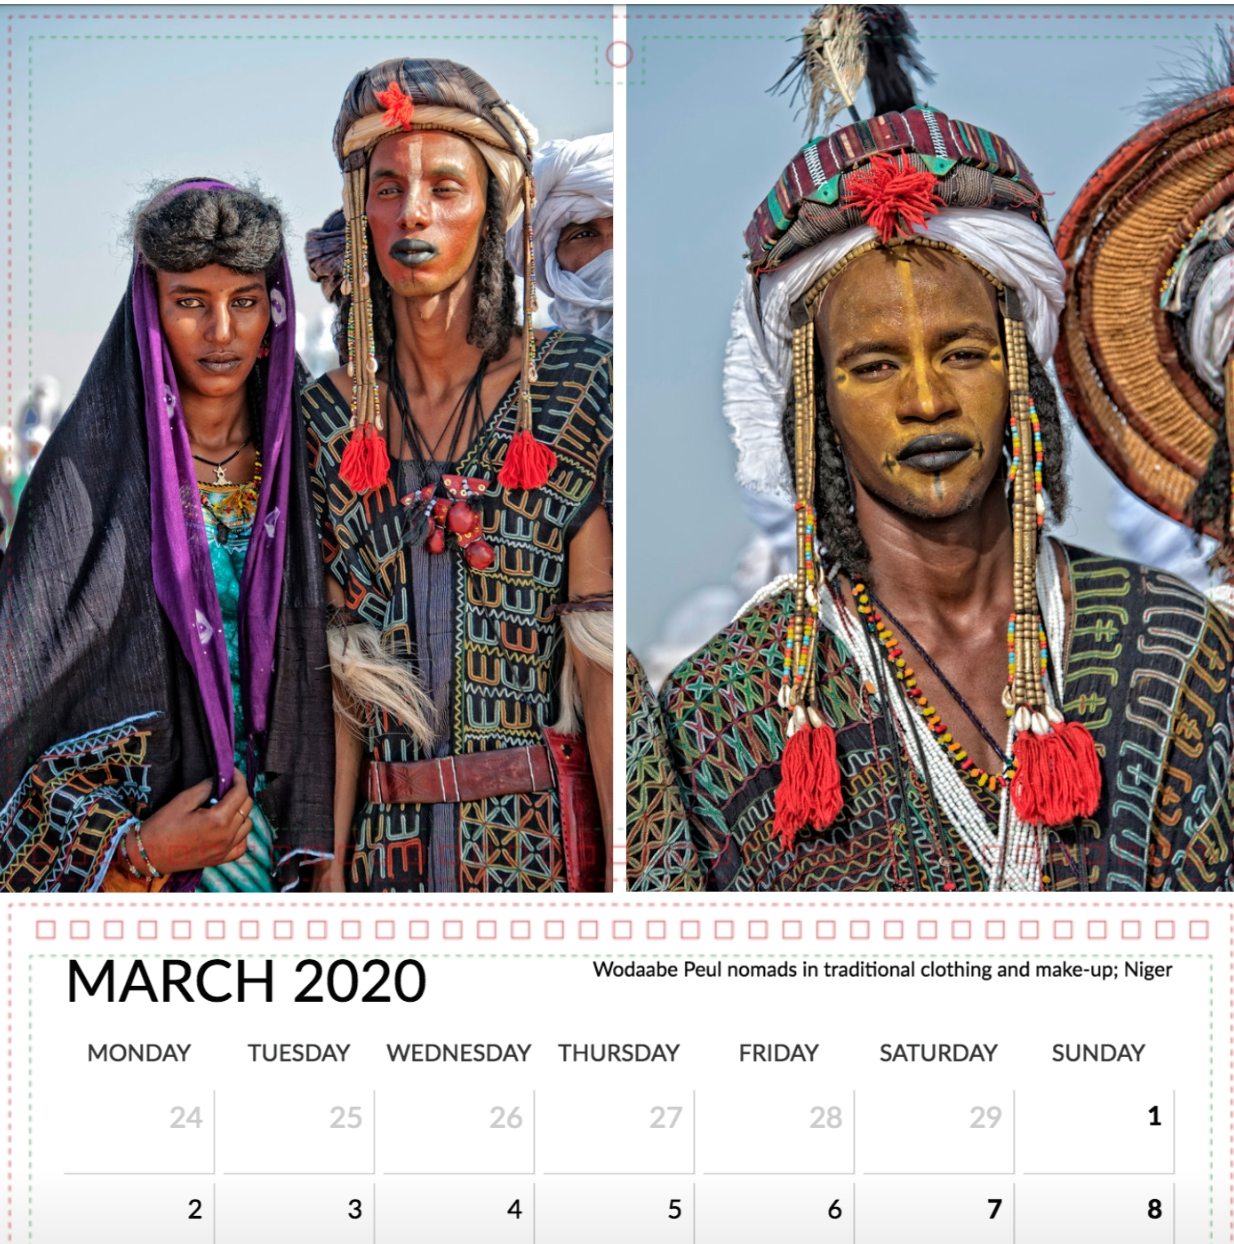 LIMITED EDITION 2020 CALENDARS NOW AVAILABLE TO ORDER